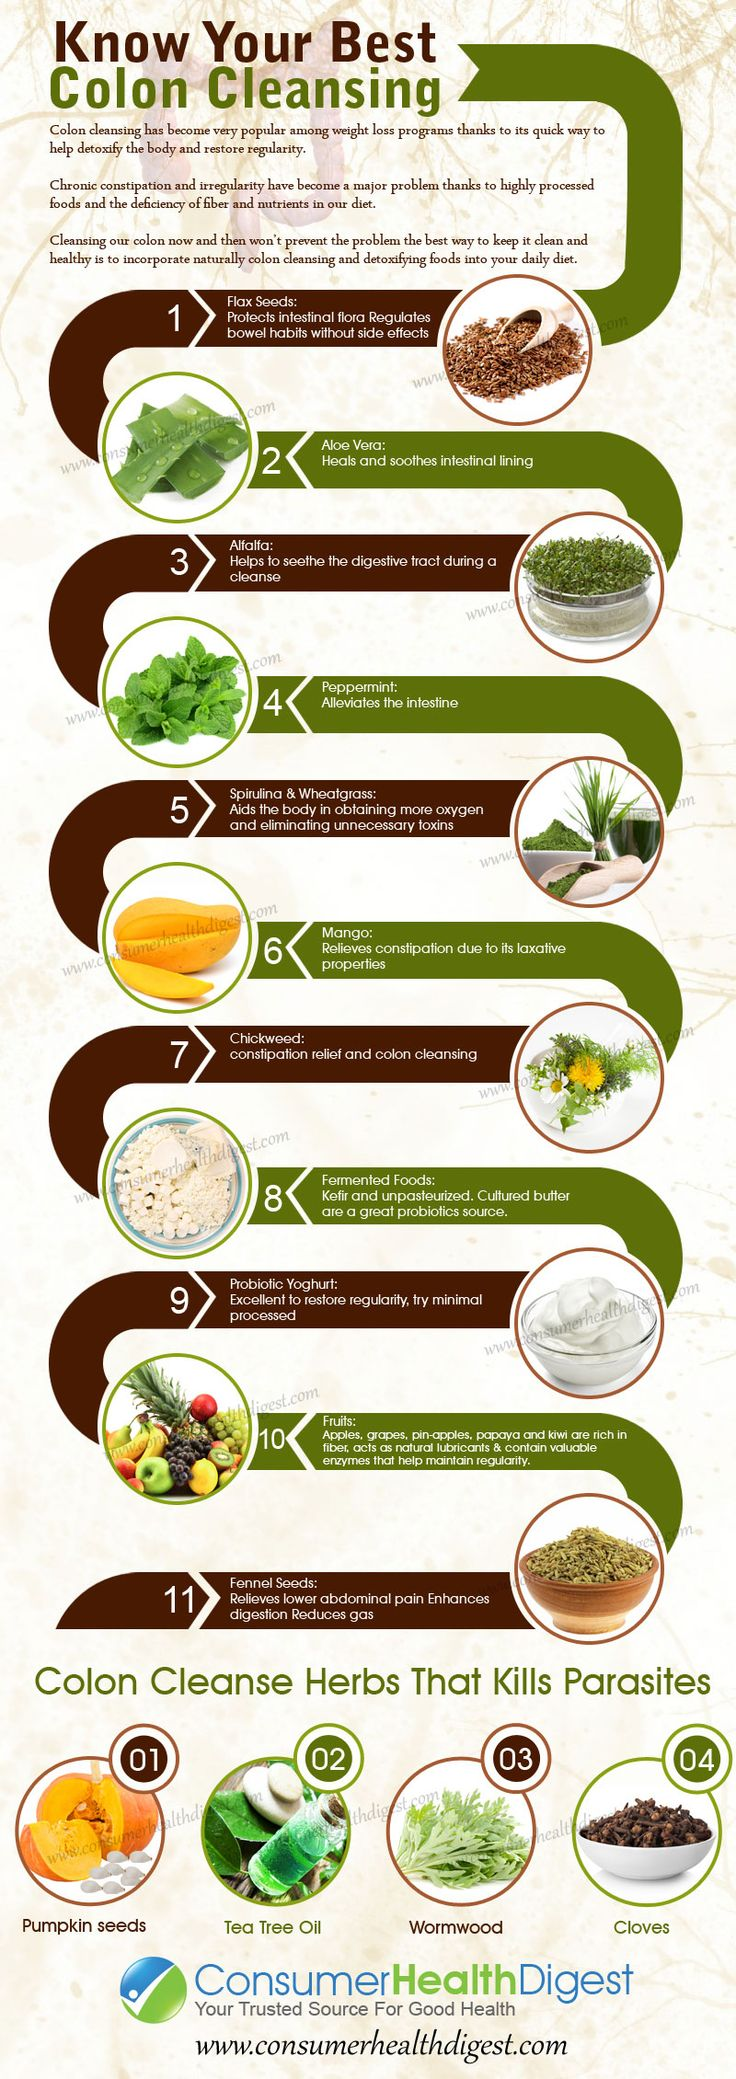 spring jackets Know Your Best Colon Cleansing Foods